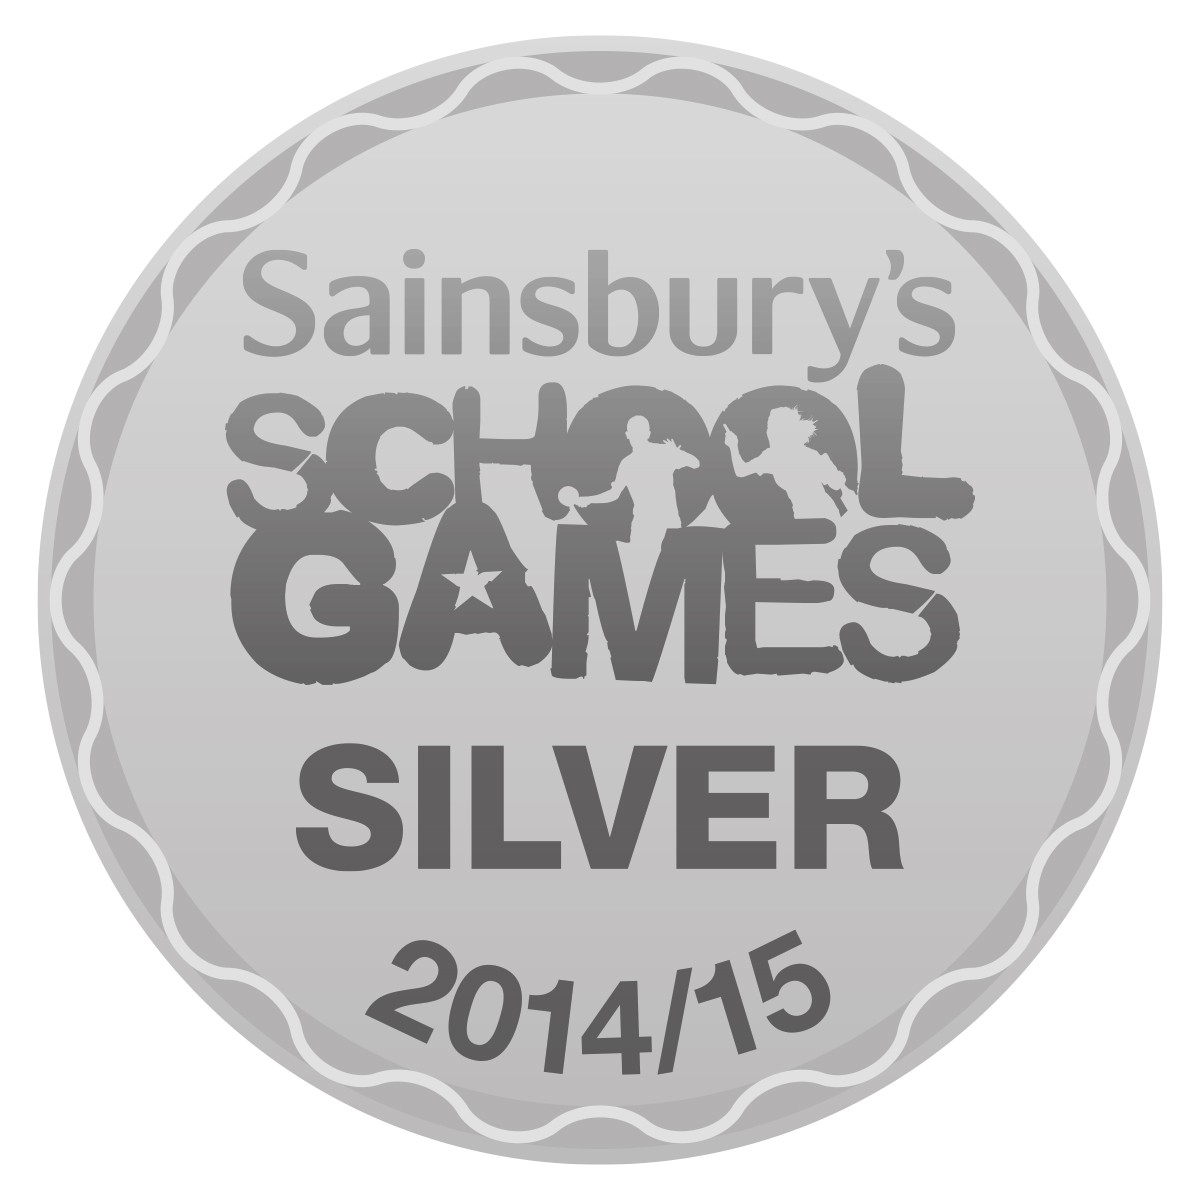 Sainsburys School Games Silver 2014/15